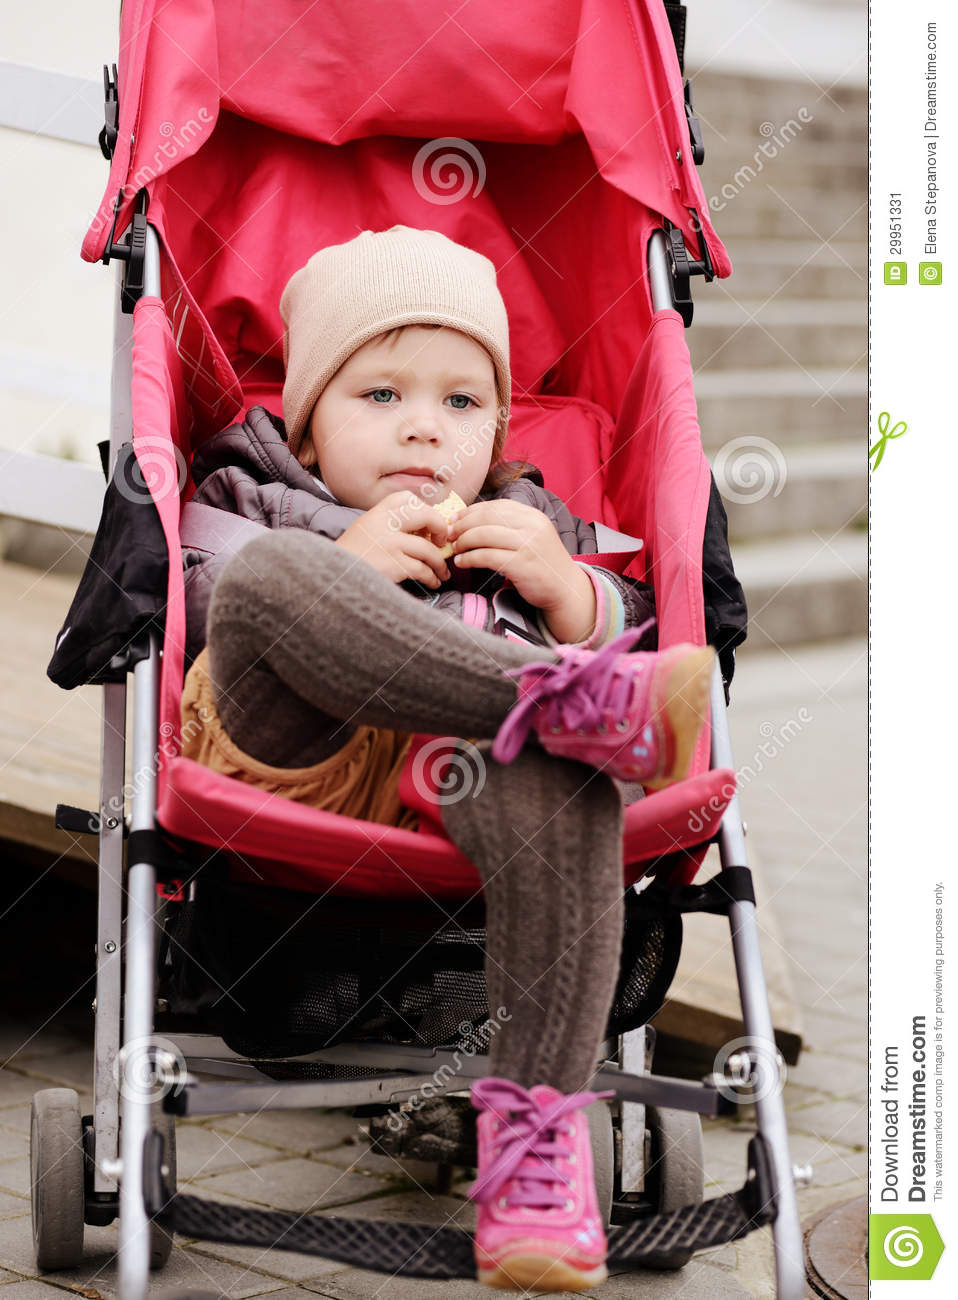 Carriage Pram Stroller Such A Cute Girl Stock Image Image Of Happy Child